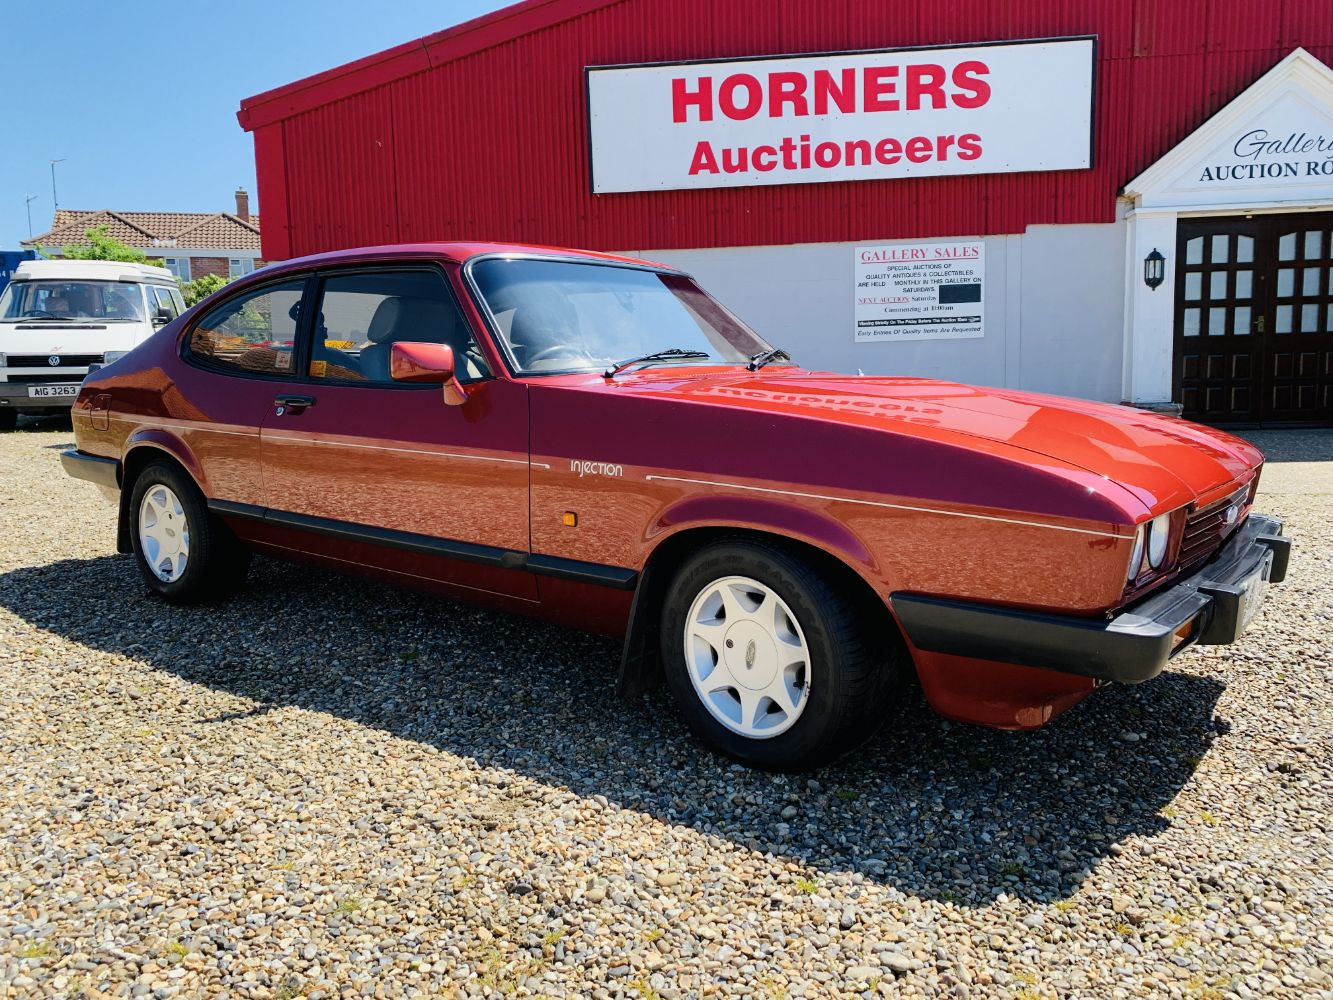 1986 Ford Capri, 90 Gold Coins, Comics, Period & Modern Furnishings, Antiques & Collectibles, Electricals, General and much more.